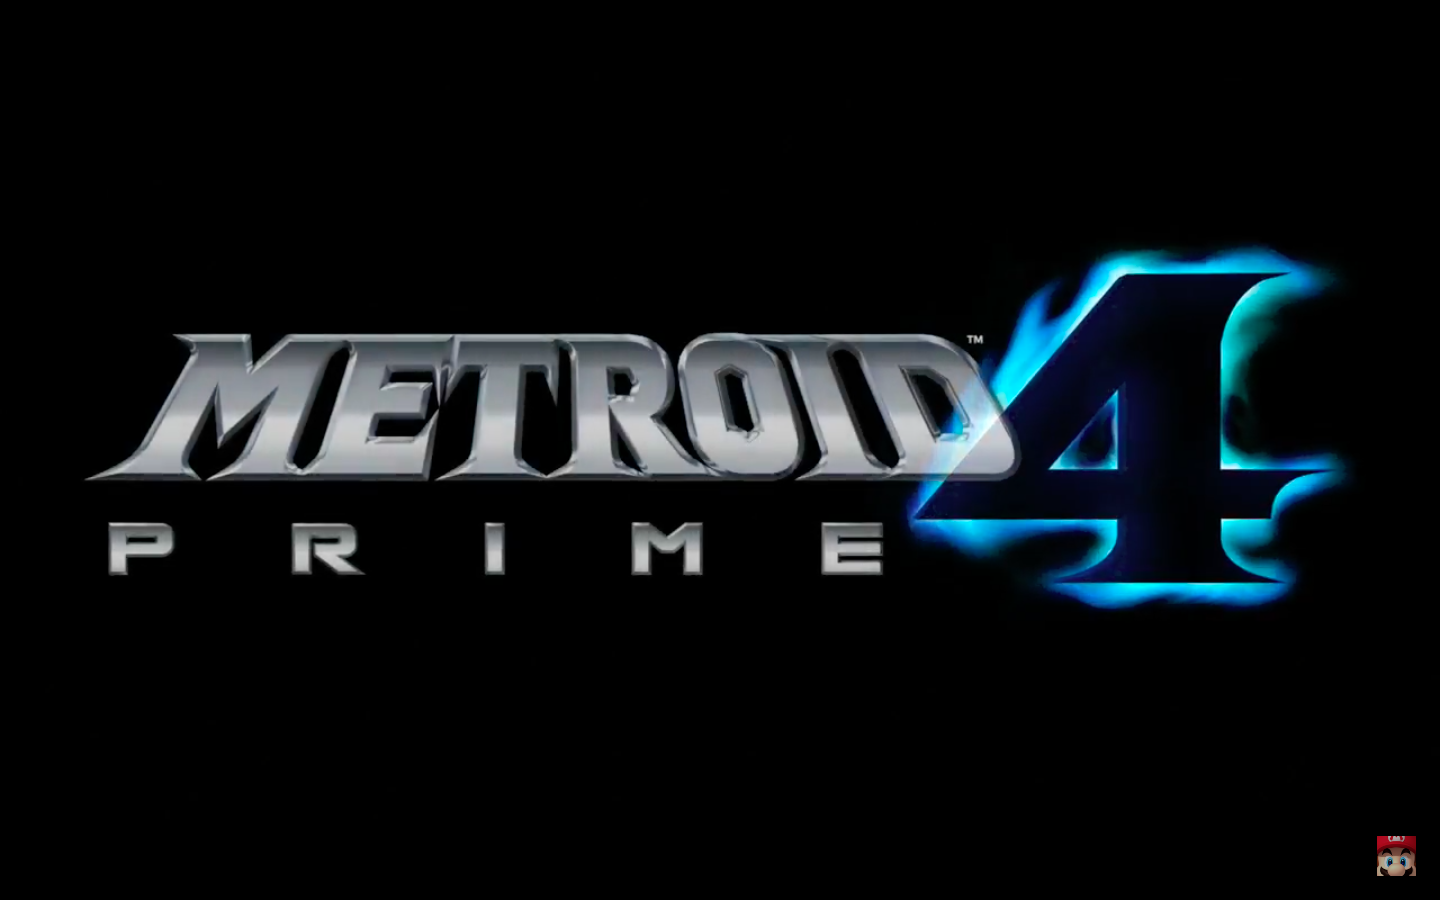 metroid prime 4 coming to nintendo switch